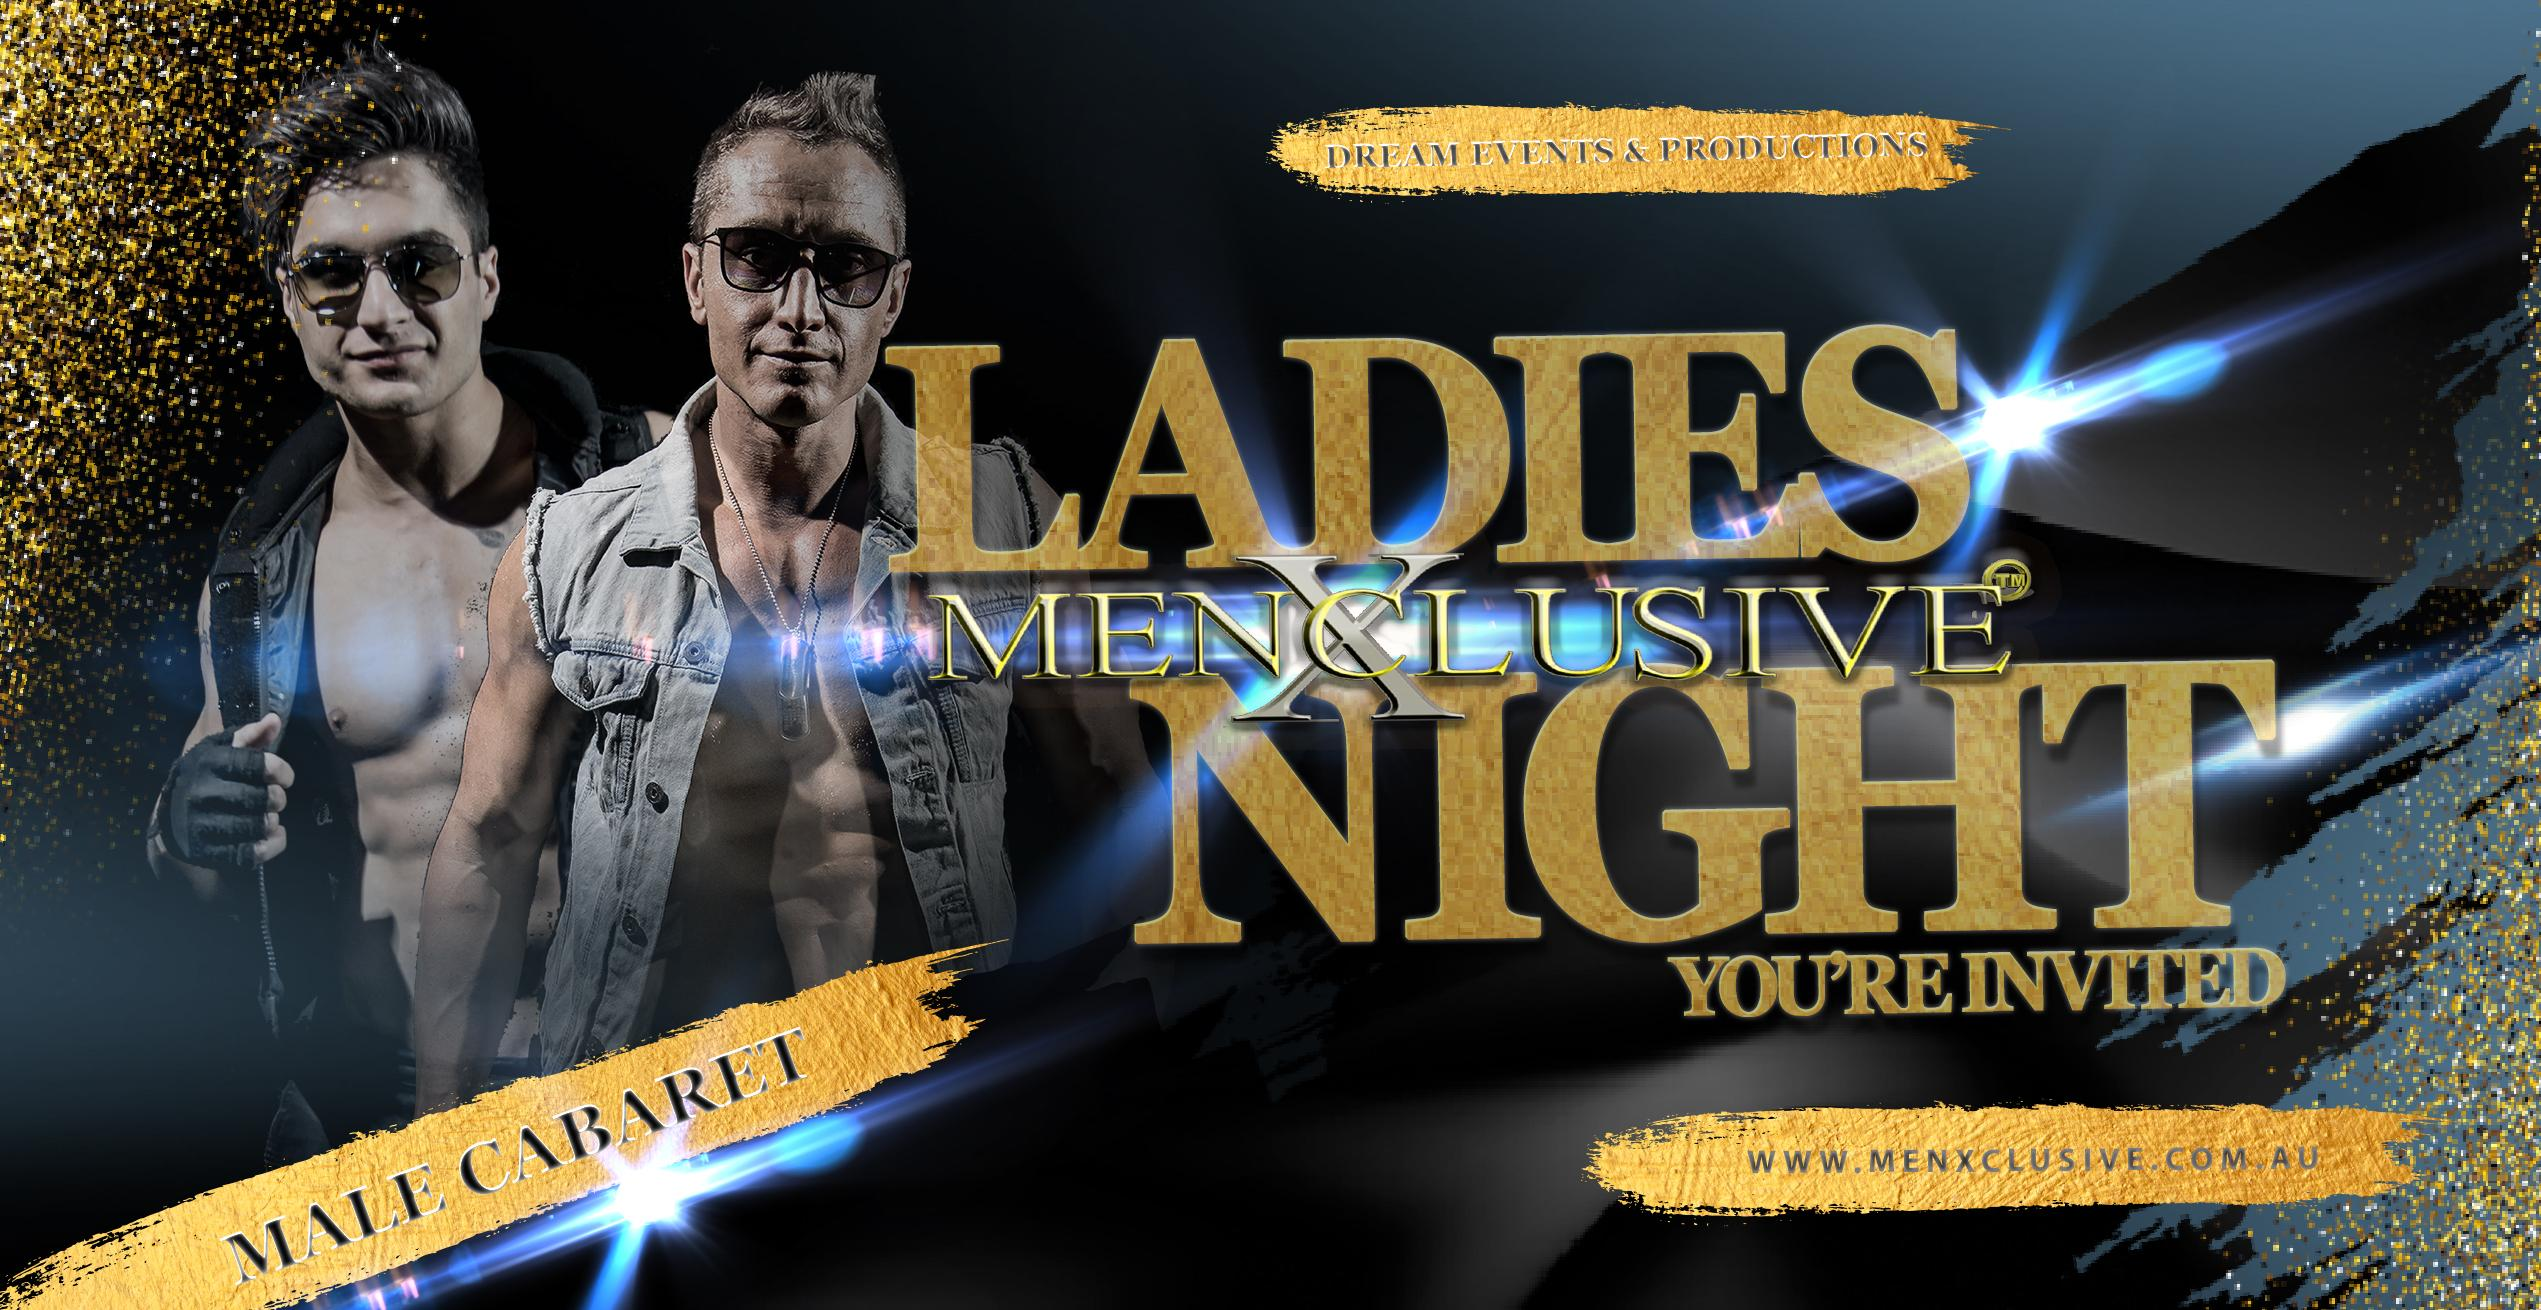 MenXclusive You're Invited - Melbourne 25 July